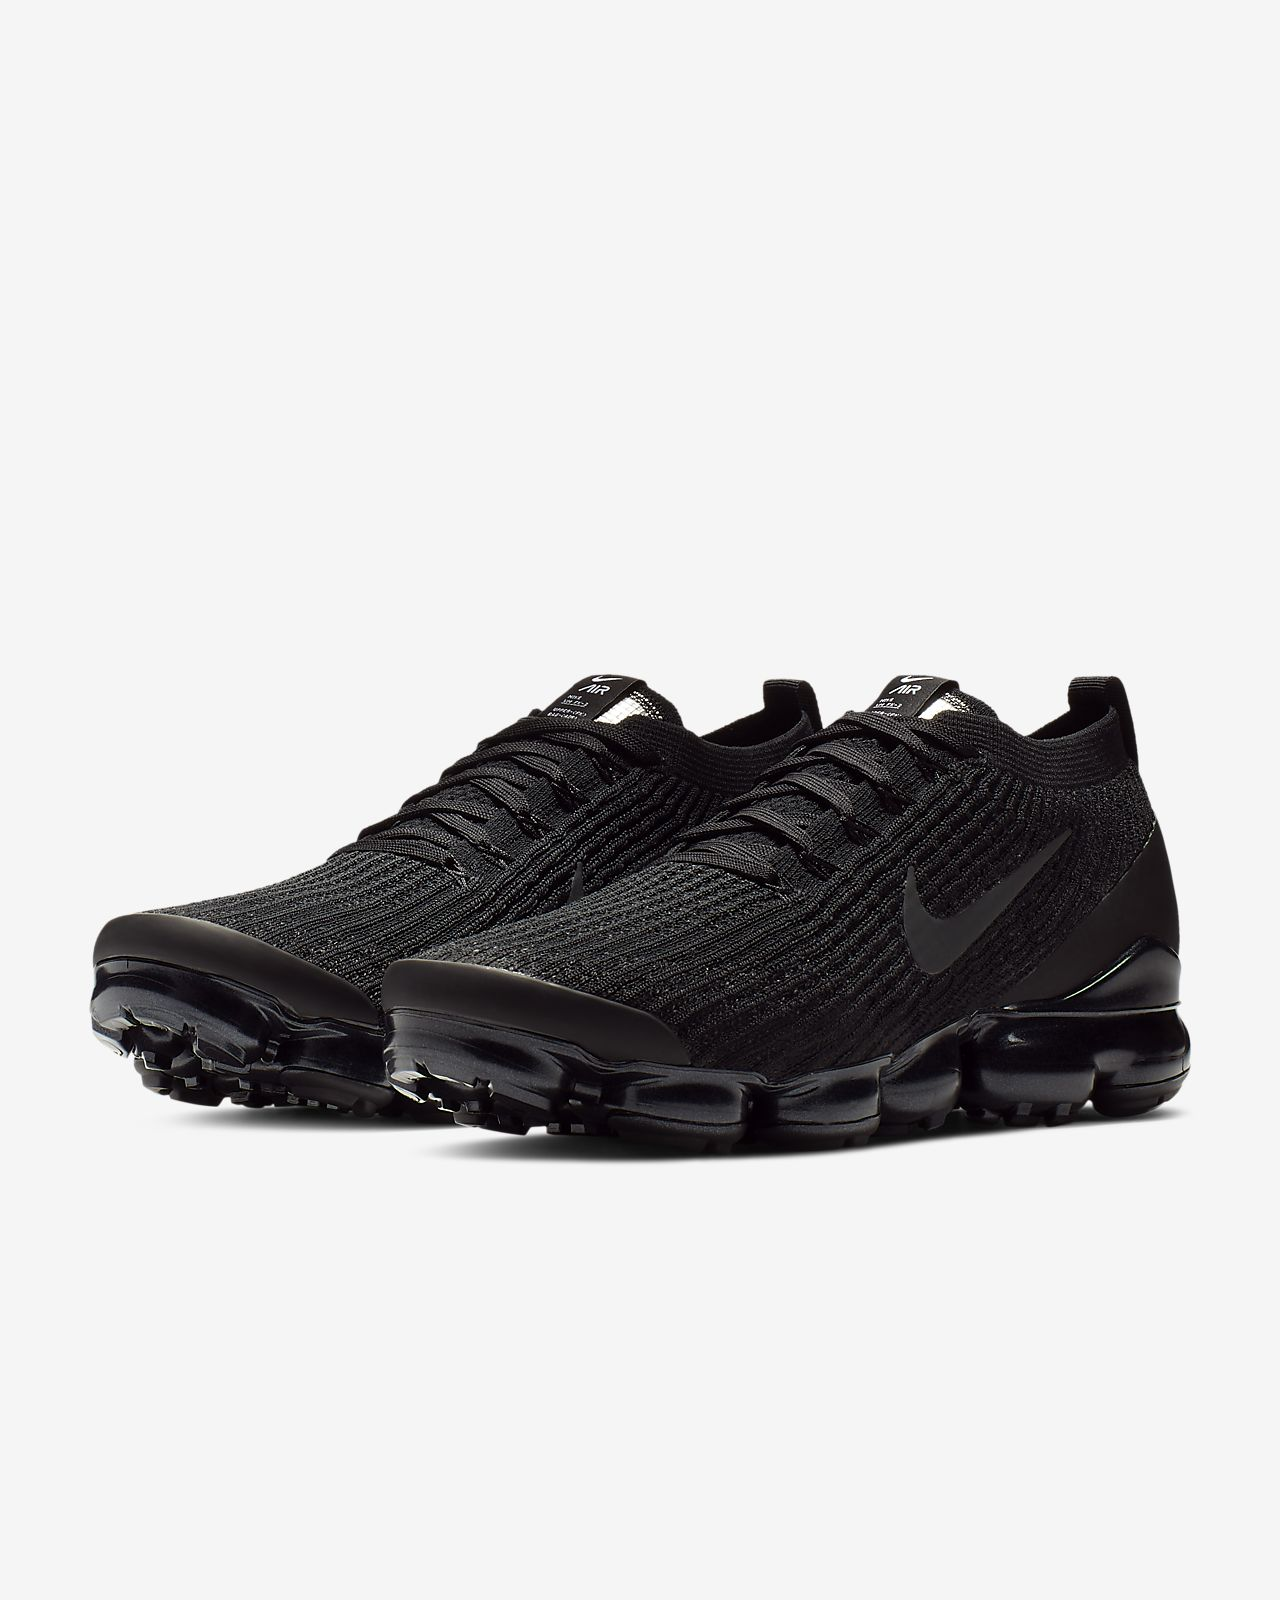 Mens Sneakers Nike Air Max Plus v 50 Cent Shox Anthracite